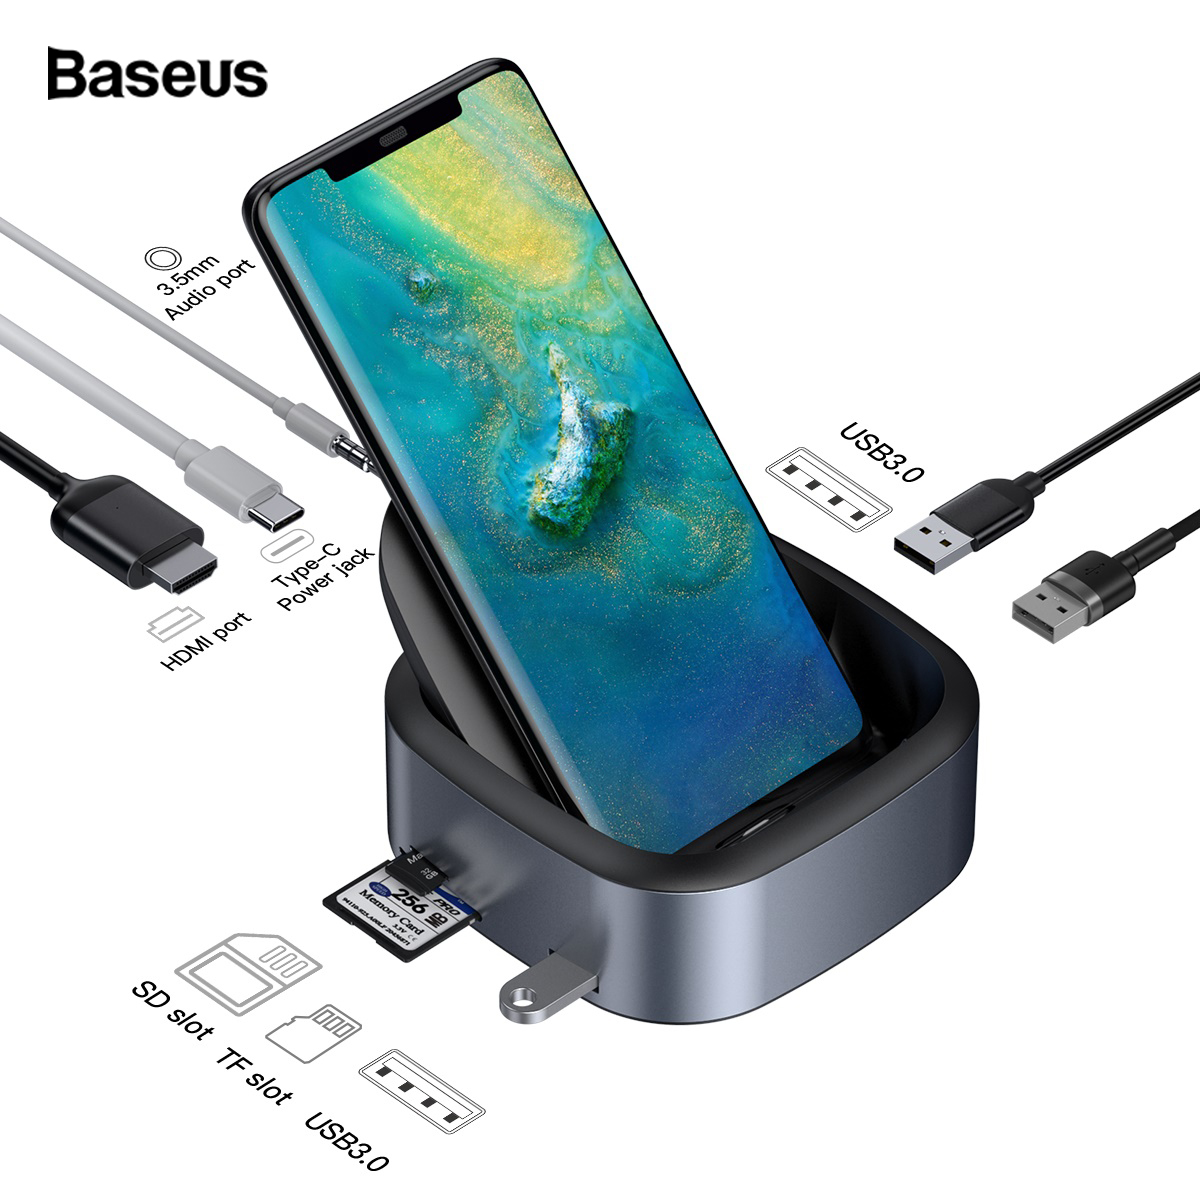 Baseus Docking-Station Dex-Pad Pd-Charger USB3.0 Type-C Huawei Samsung S10 For P30 P20